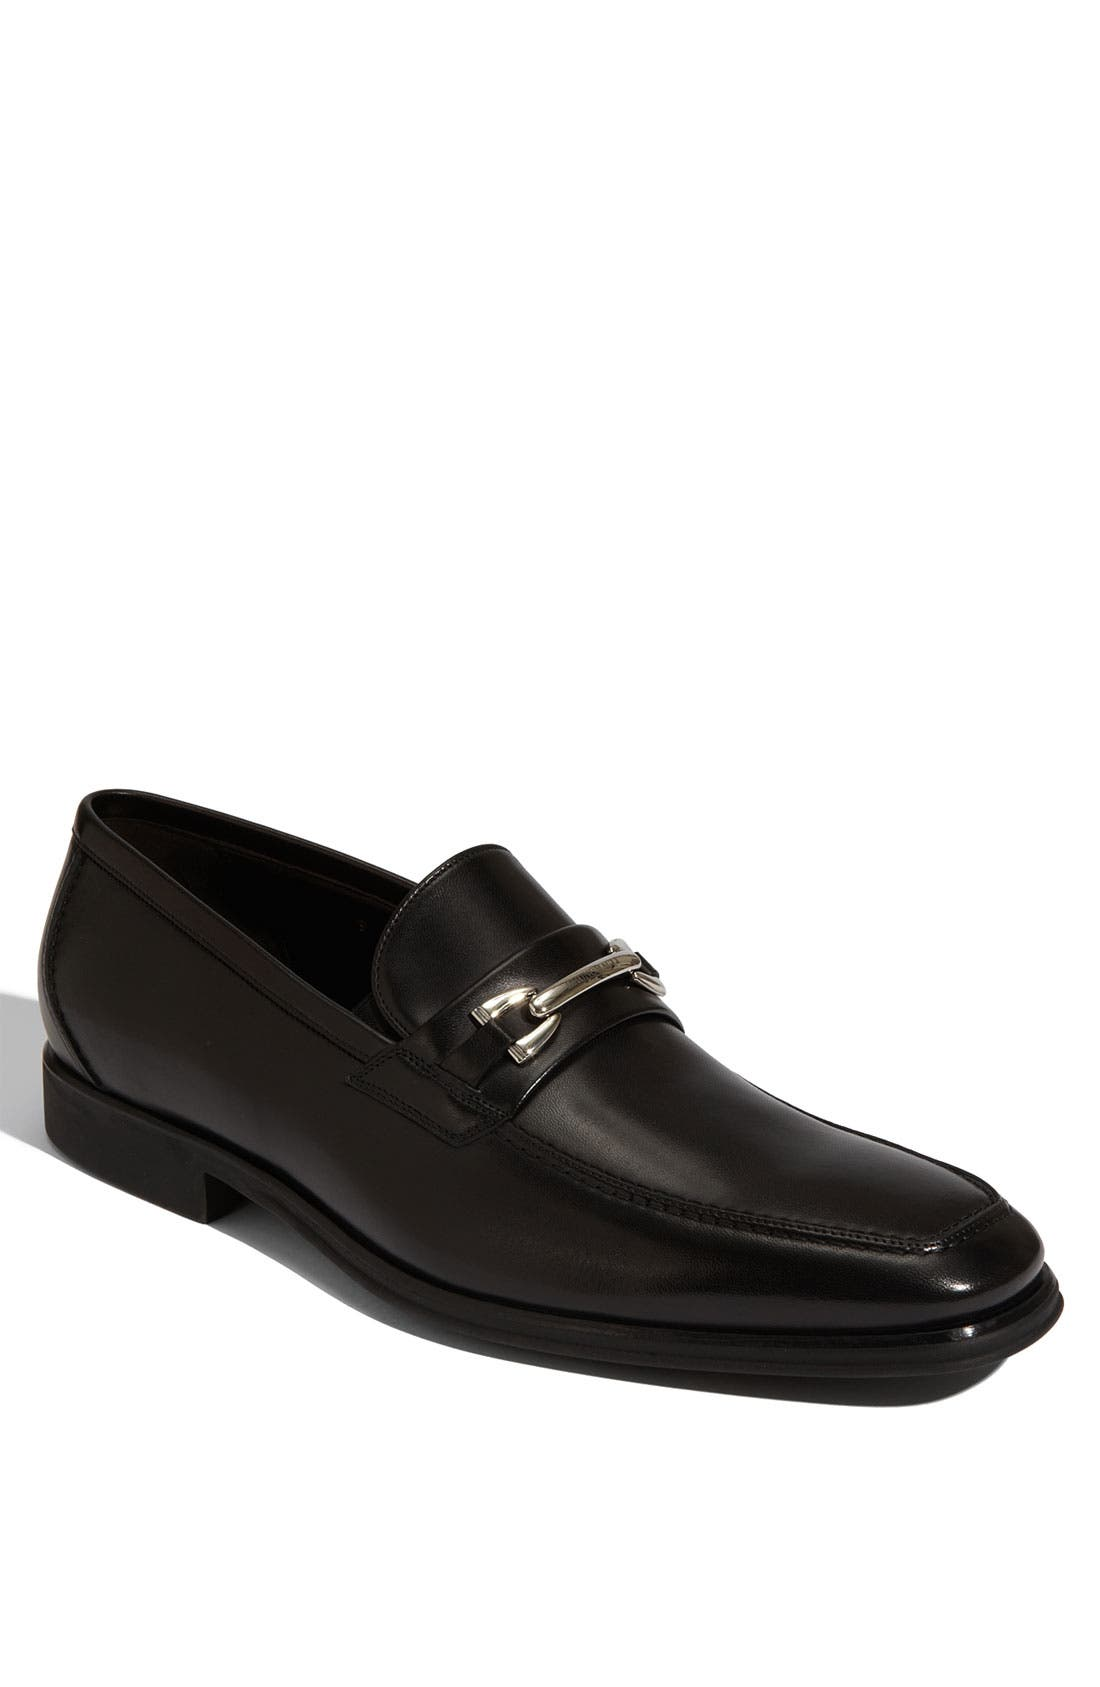 'Renegade' Loafer,                         Main,                         color, 001